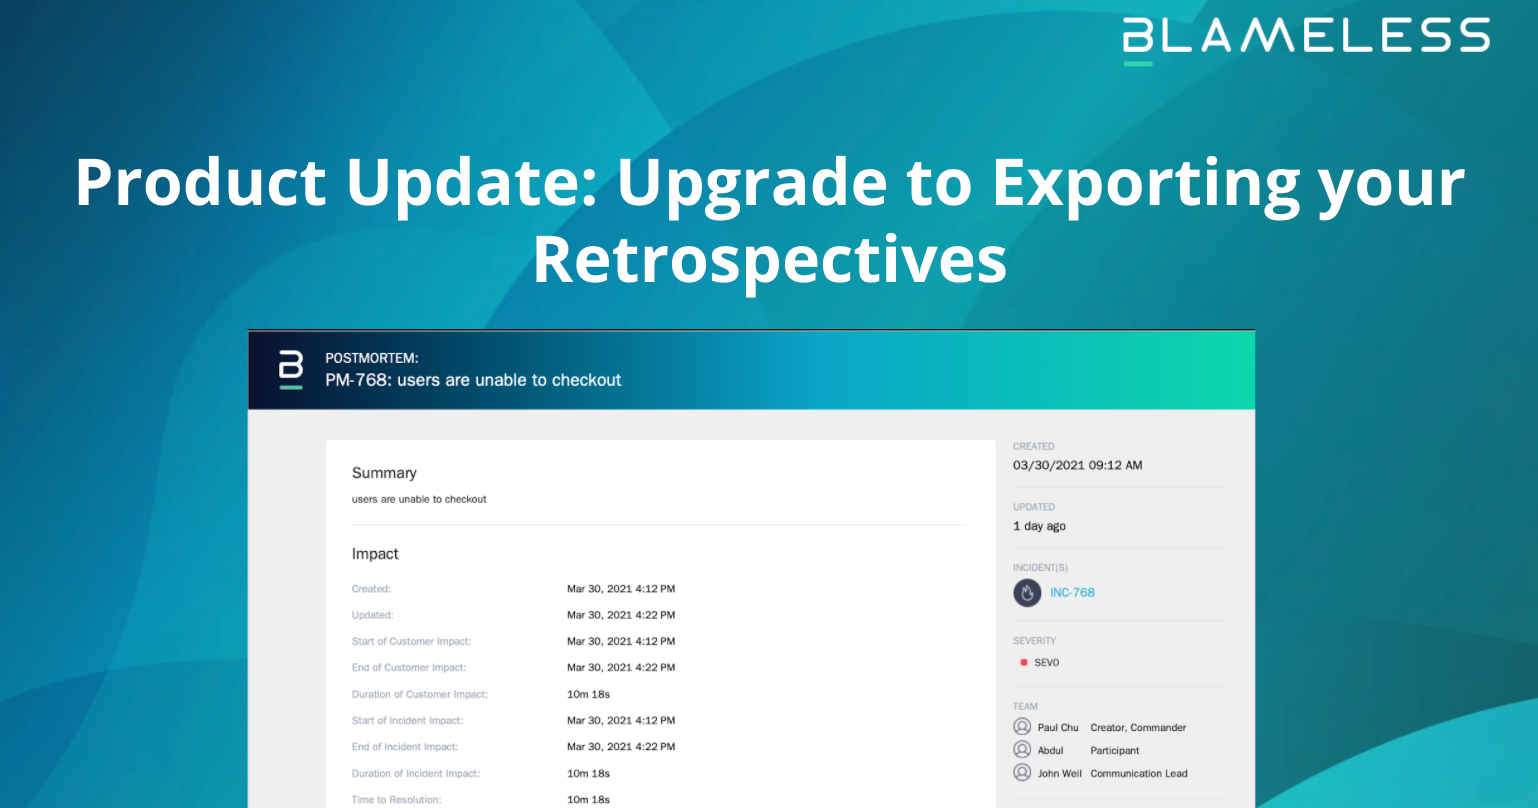 Product Update: Upgrade to Exporting your Retrospectives